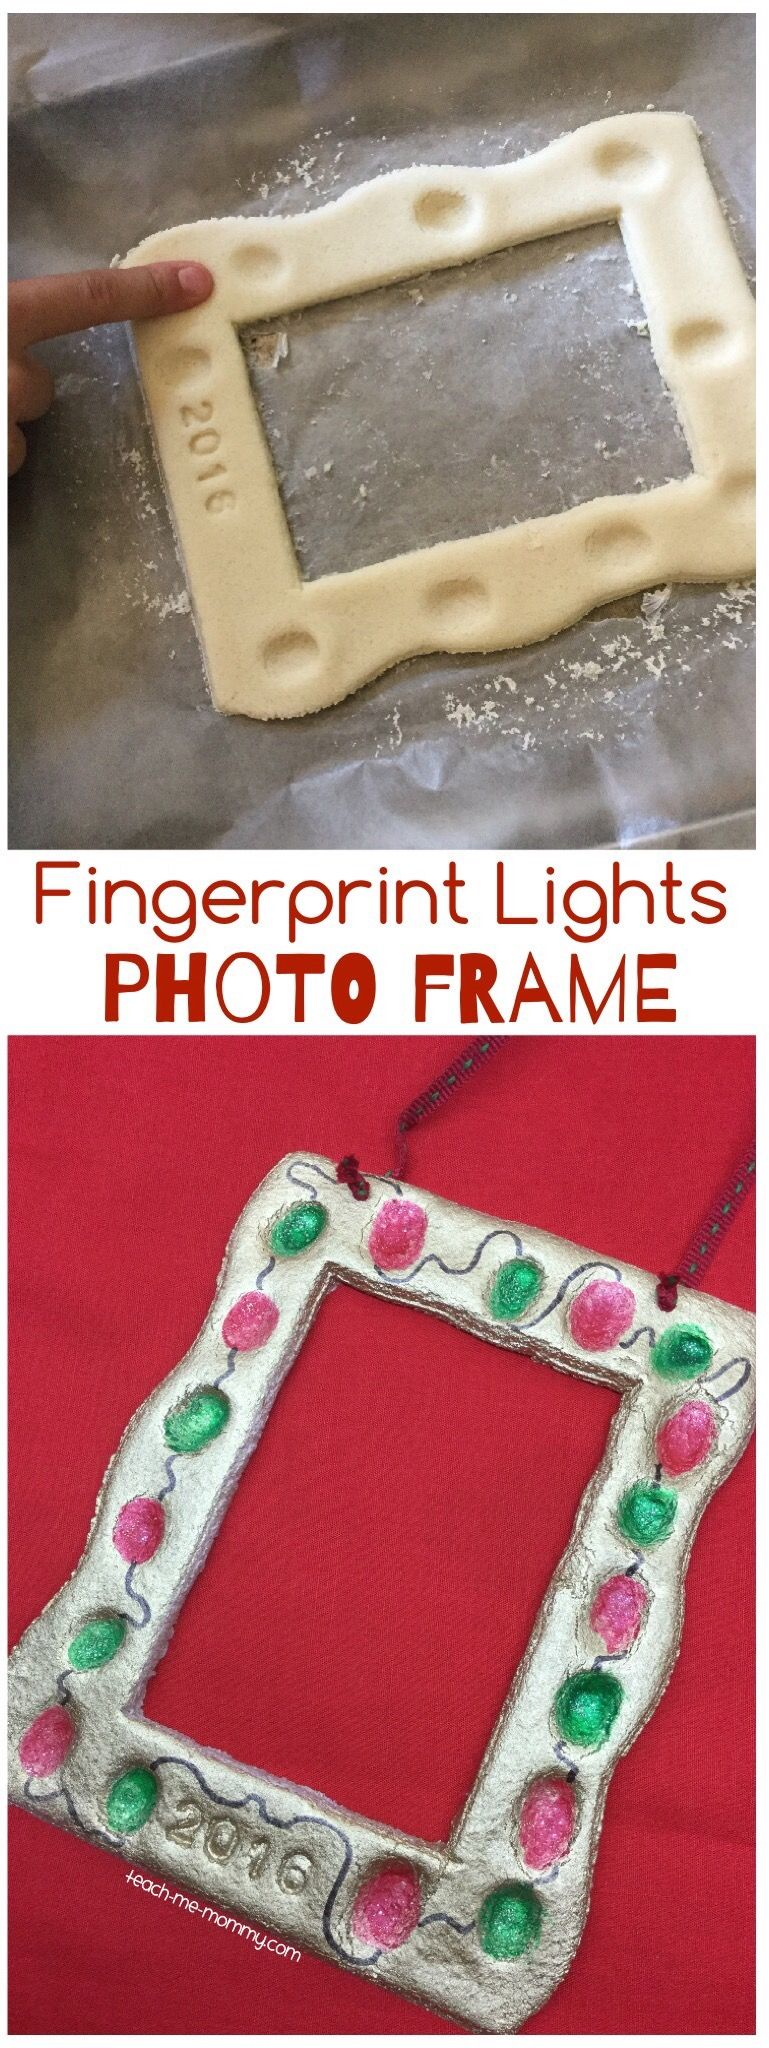 Fingerprint lights photo frame christmas lights santa and lights fingerprint lights photo frame i wish i had seen this when my kids were little we would have loved to make fingerprint christmas lights photo frames and solutioingenieria Gallery